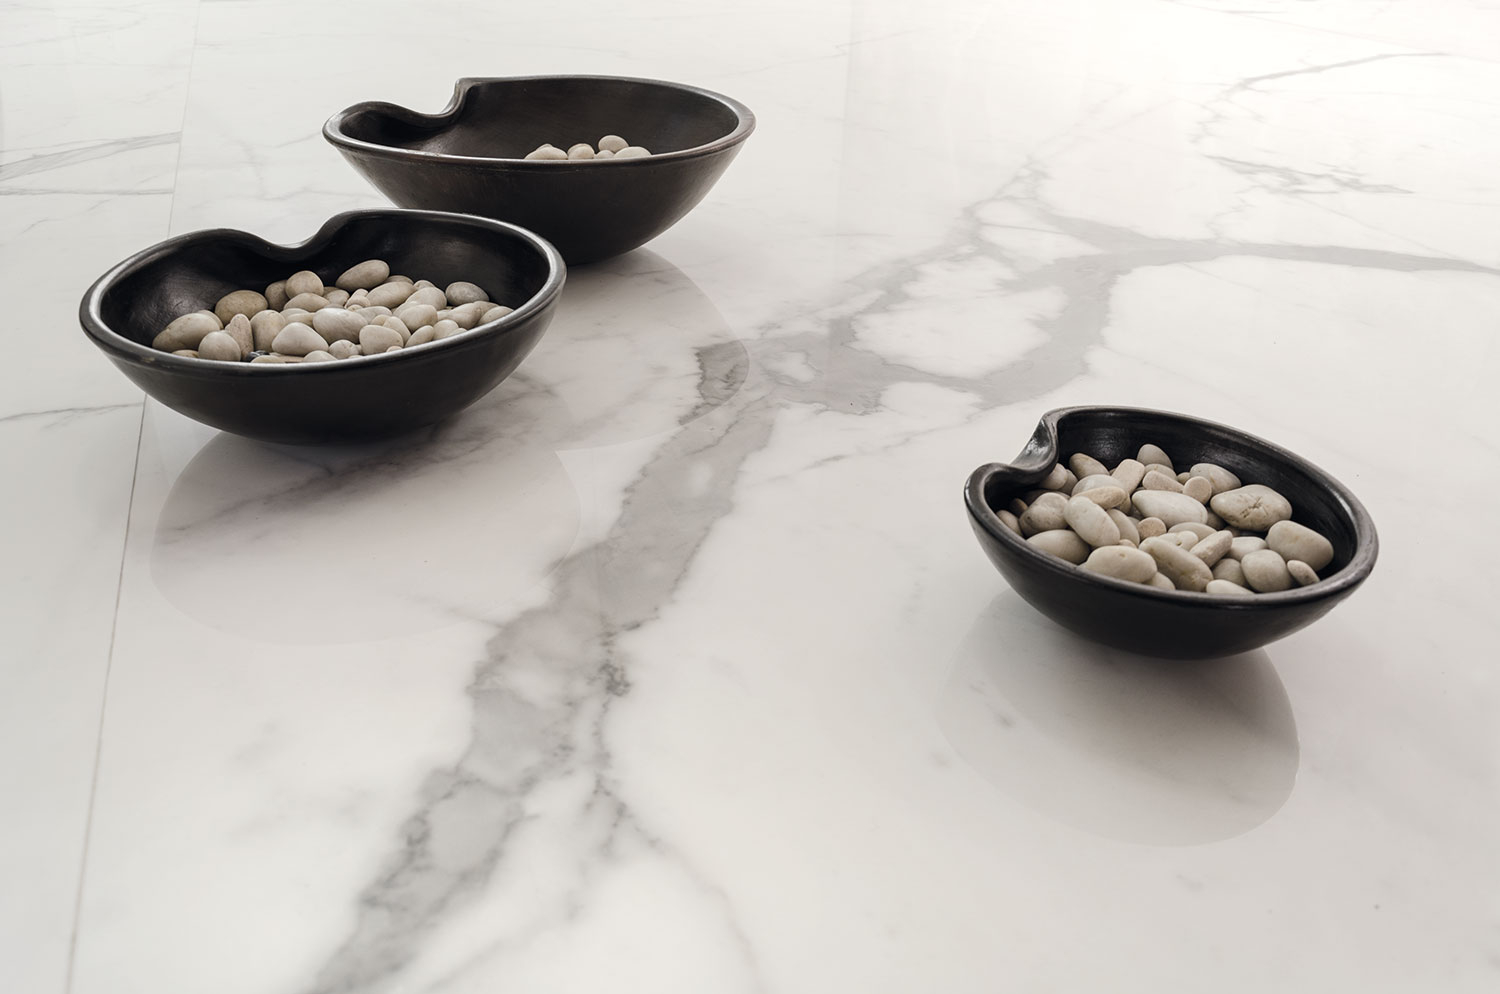 marble porcelain stone surface with bowls